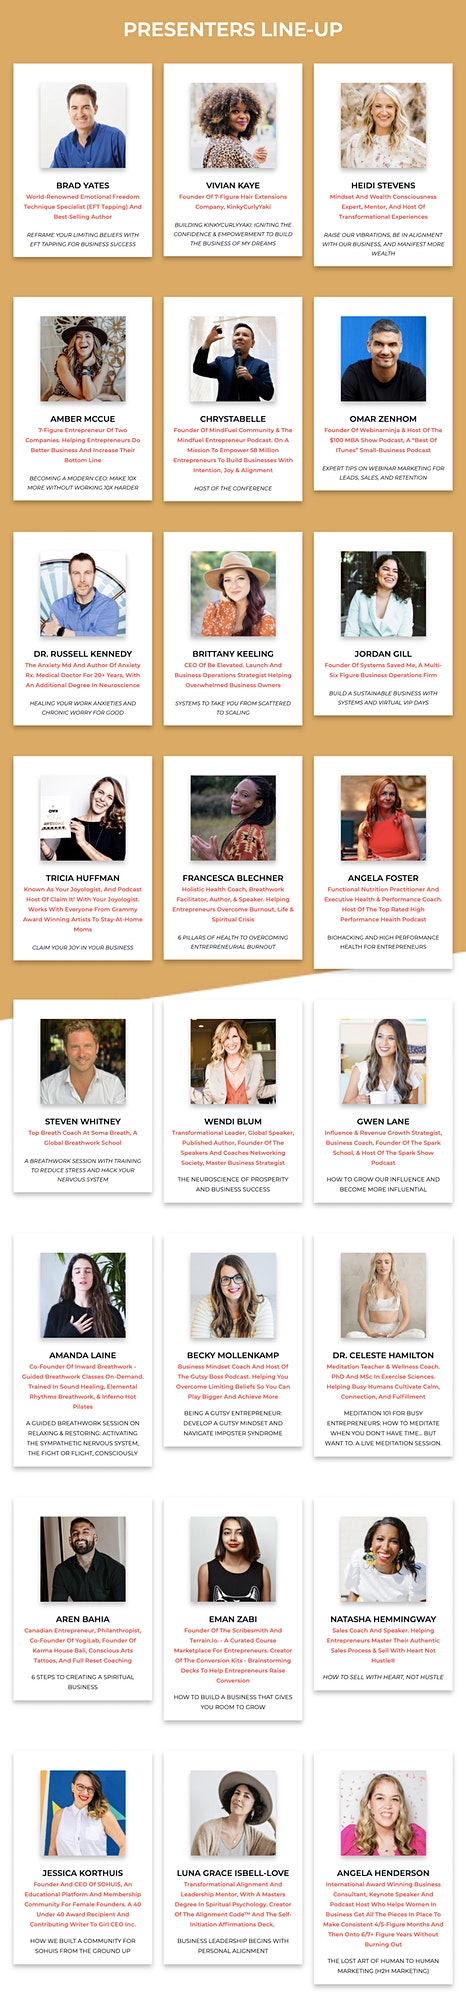 LEVEL-UP Business Success And Alignment Conference [Online Conference] image